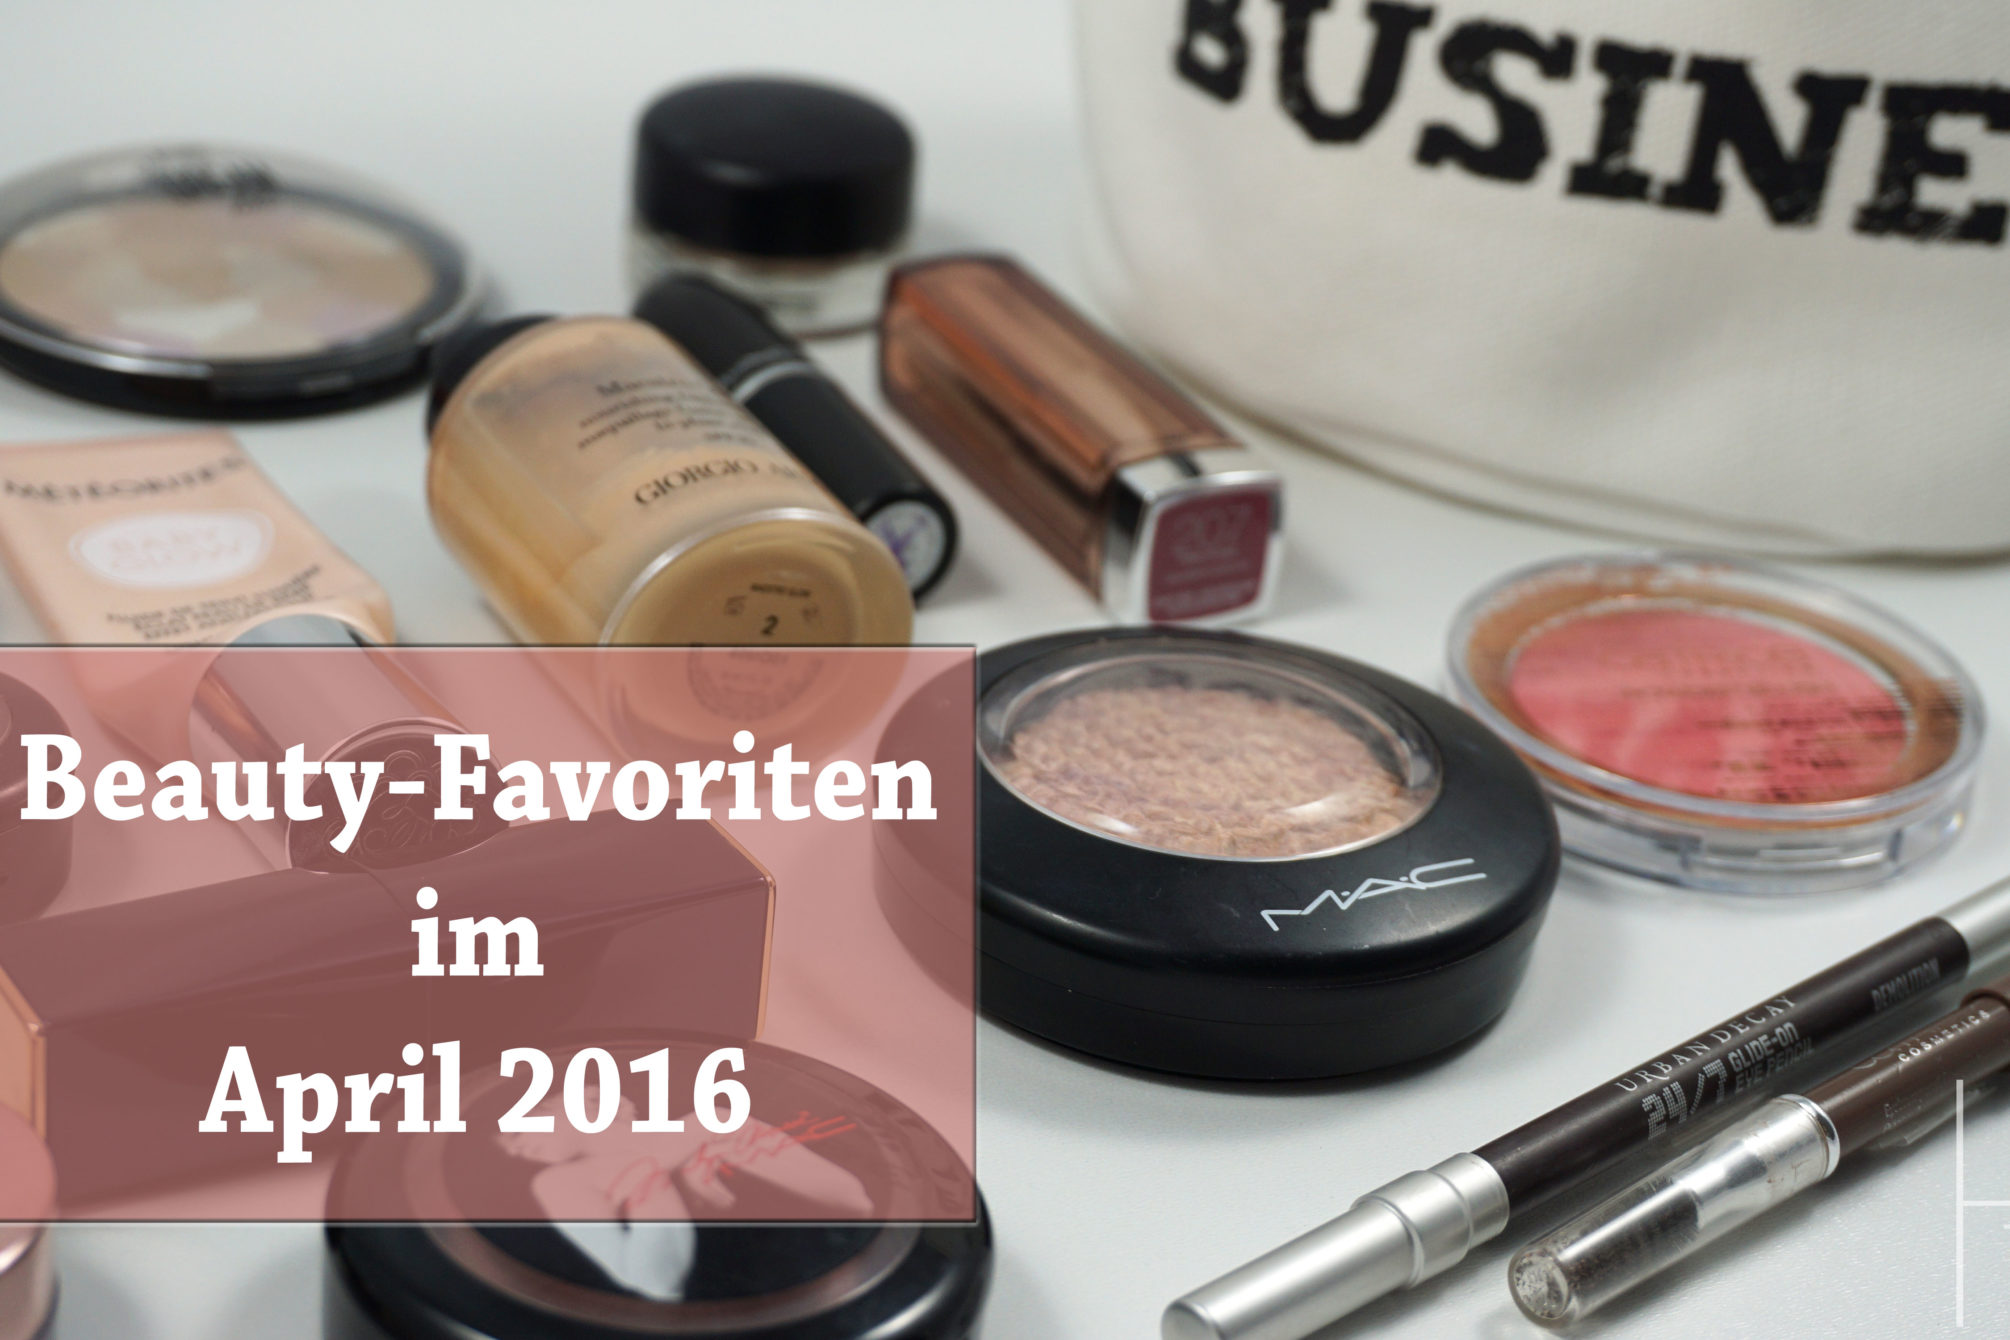 Beauty-Favoriten im April 2016